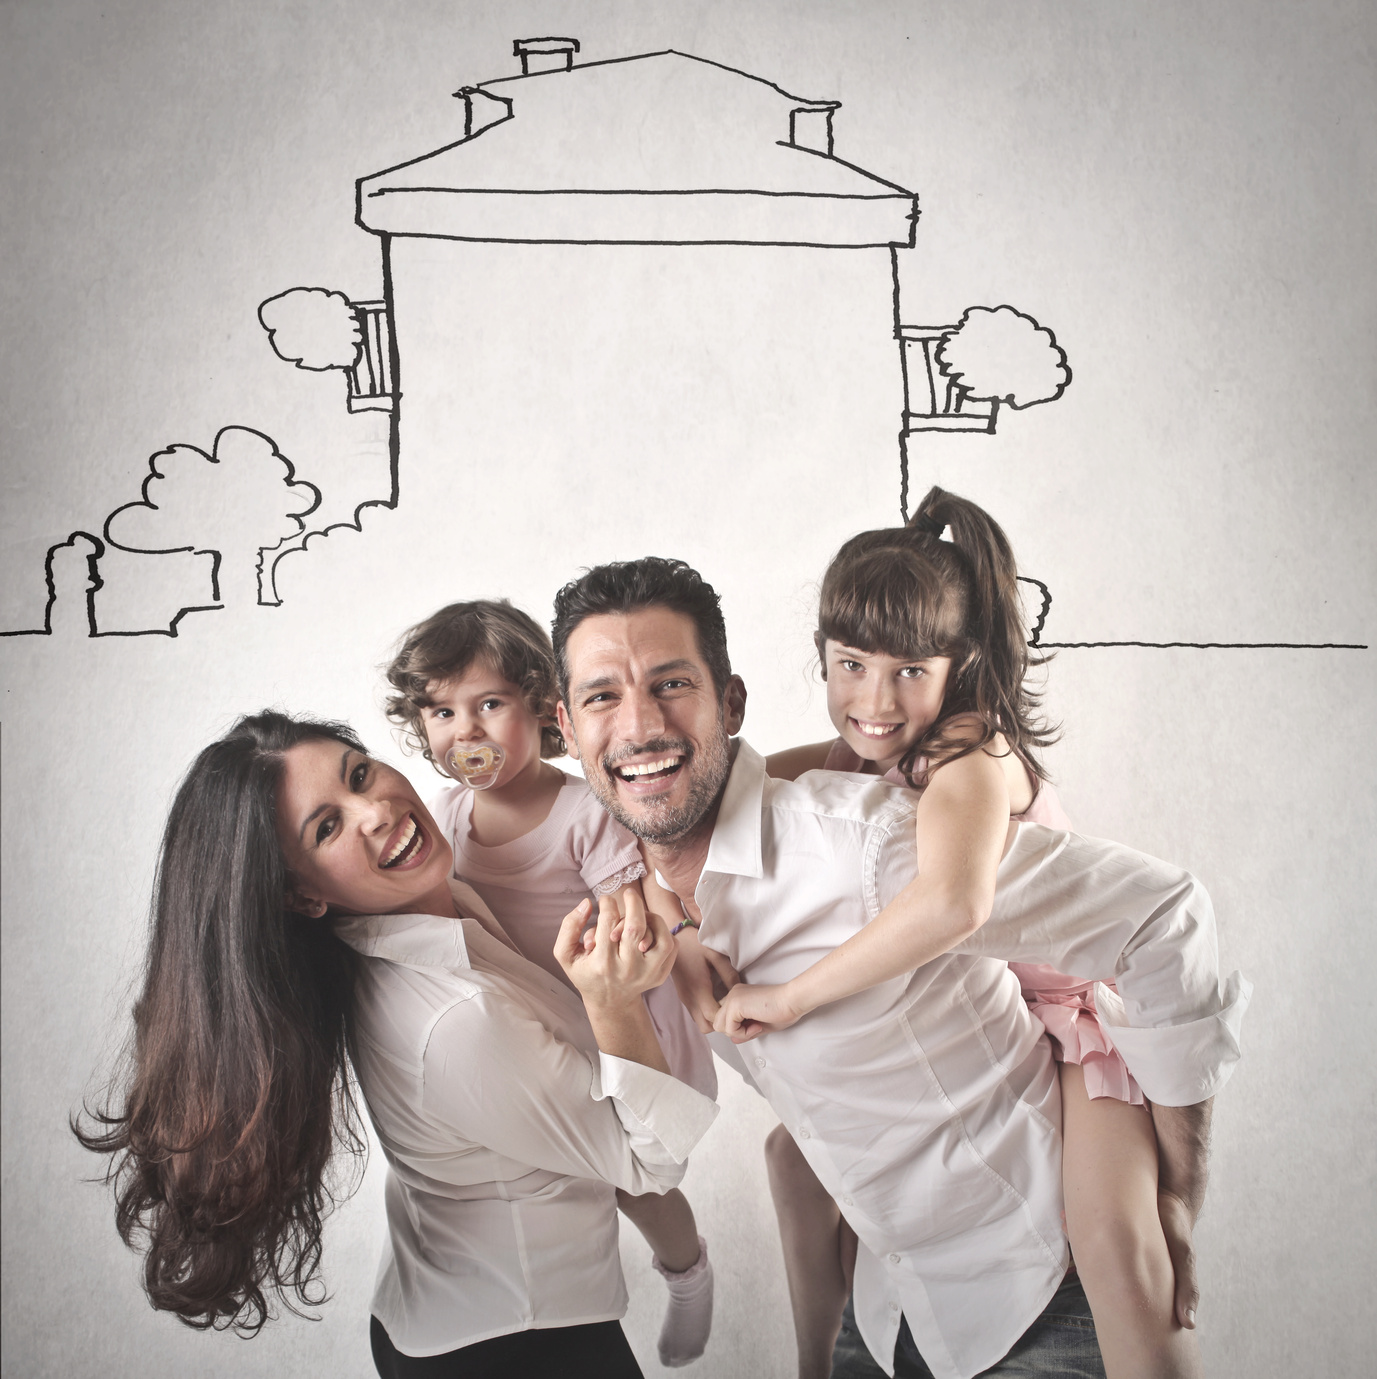 Homebuyers, Happy Homebuyers, Buyers as brand ambassadors, Happy home owners, NRIs, Family in new house, India real estate news, Indian property market, Best news magazine on real estate